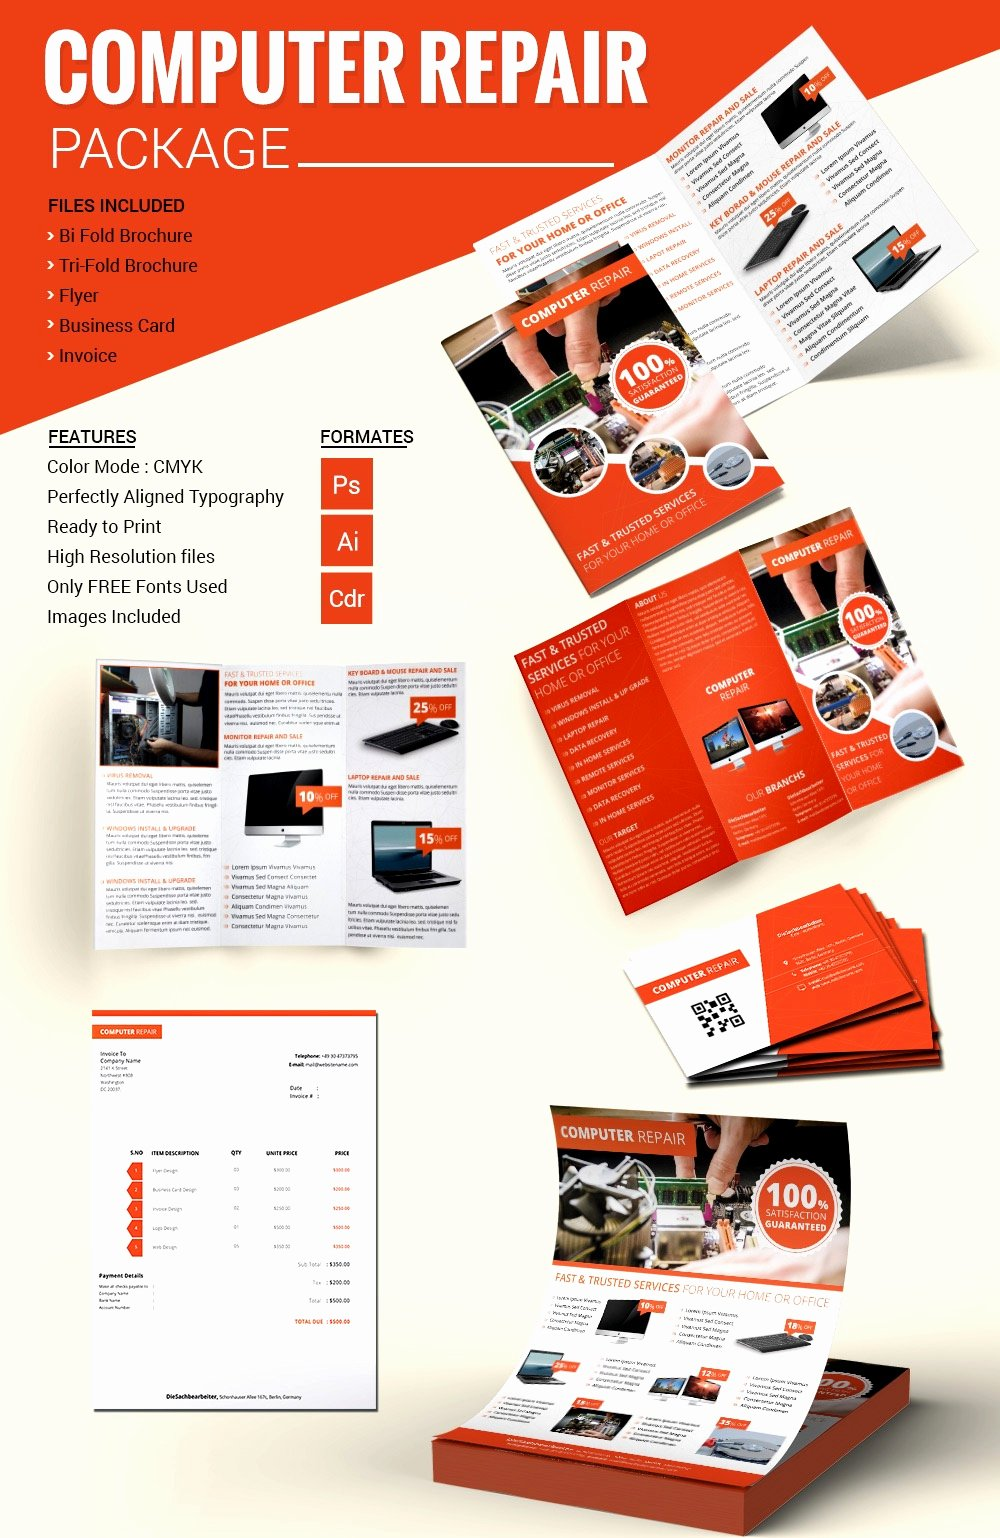 Puter Repair Flyer Template Free Psd Ai format Downl